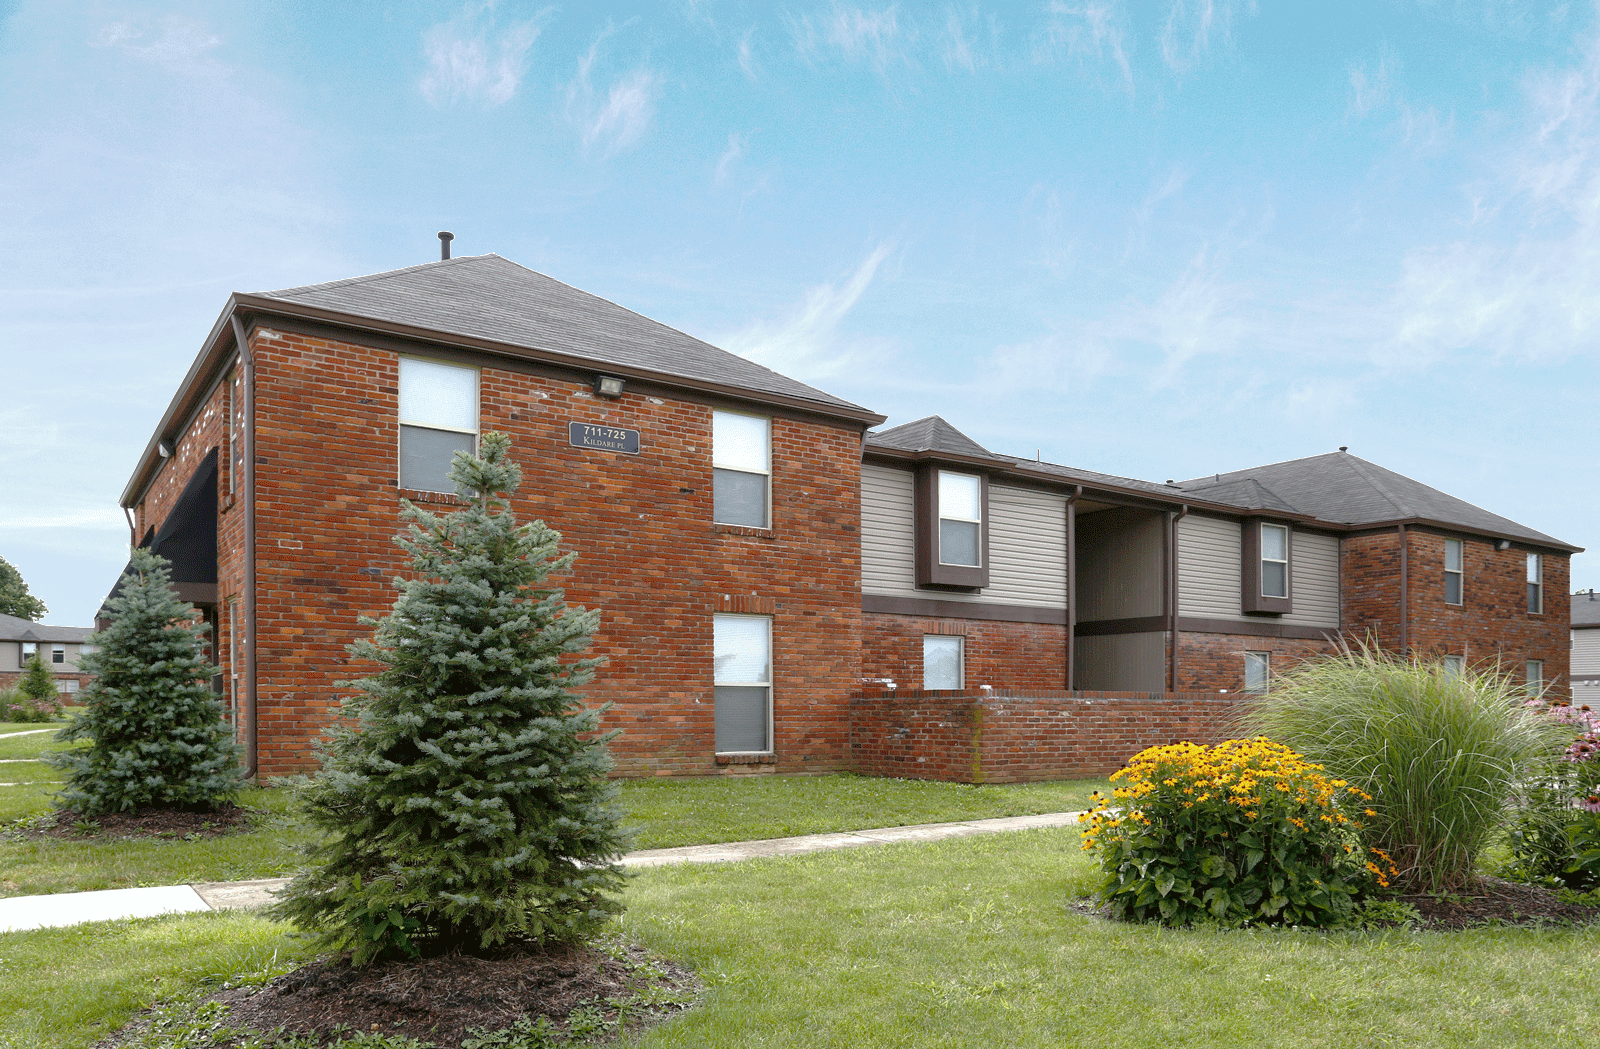 Kensington Square Apartments Dayton Oh